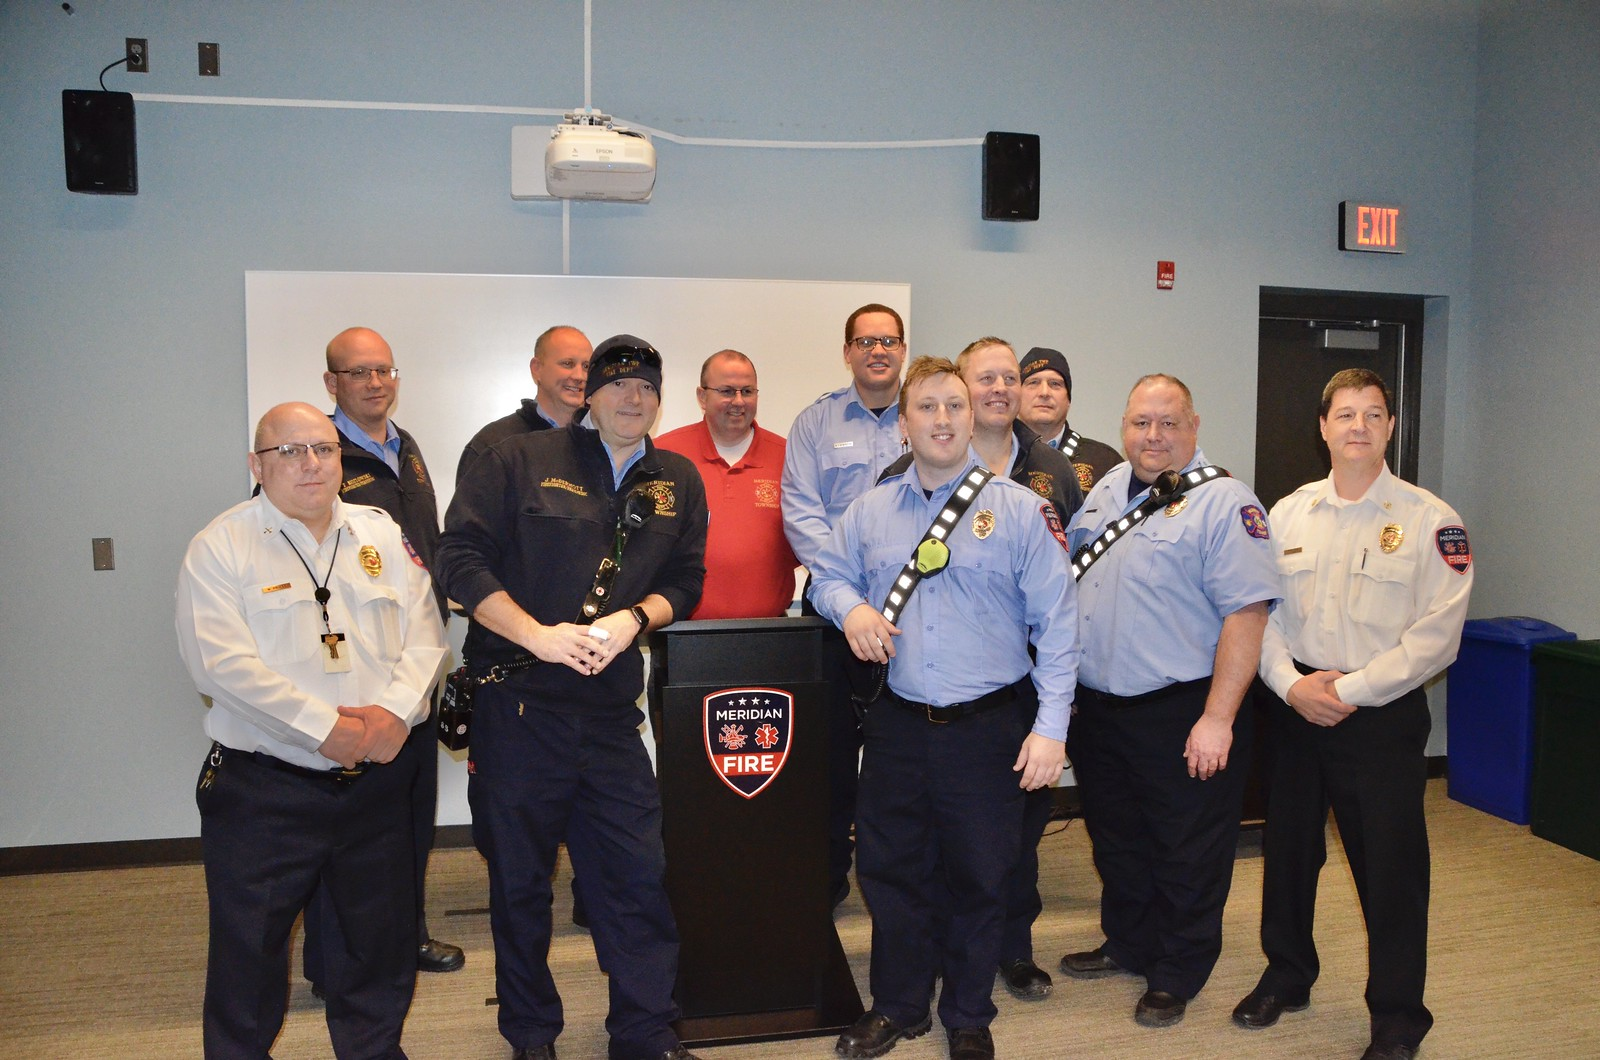 Meridian Township Fire Department Welcomes New Paramedic/Firefighter